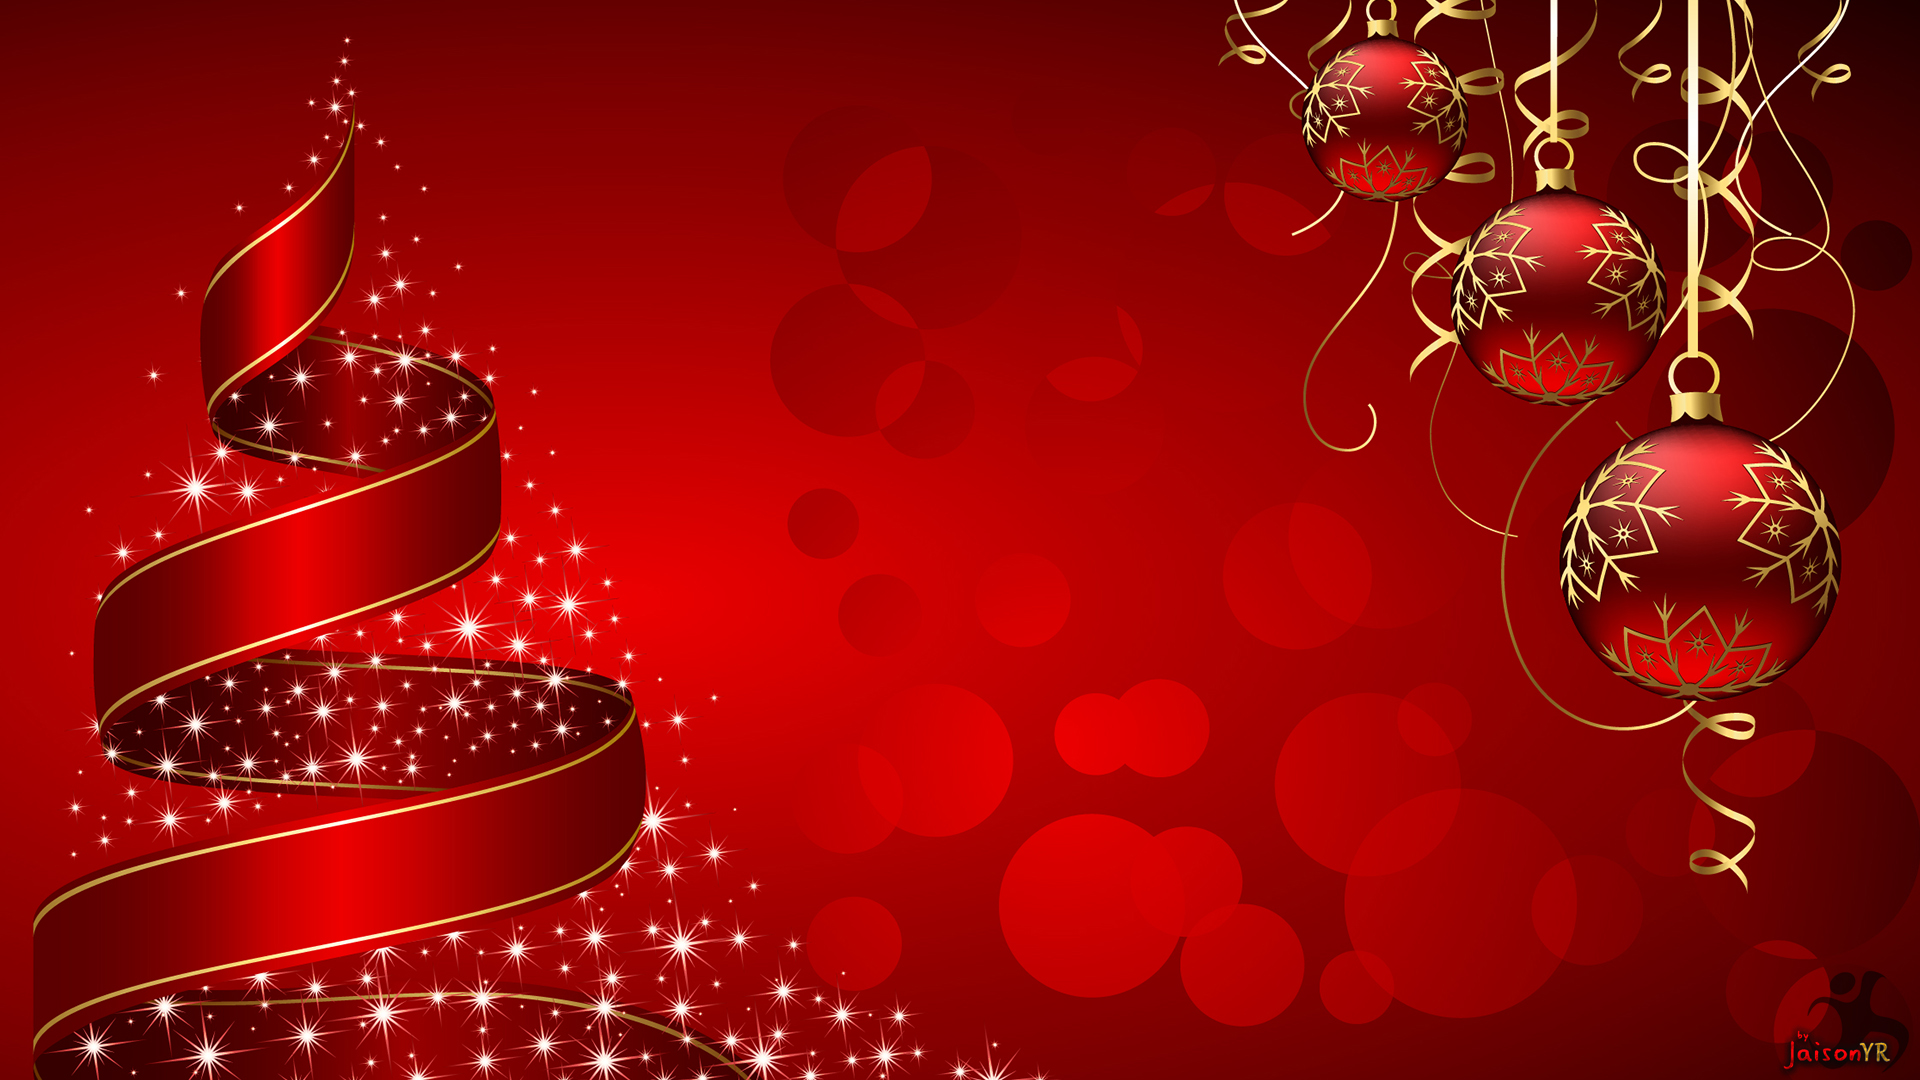 Christmas Tree Wallpaper by JaisonYR 1920x1080